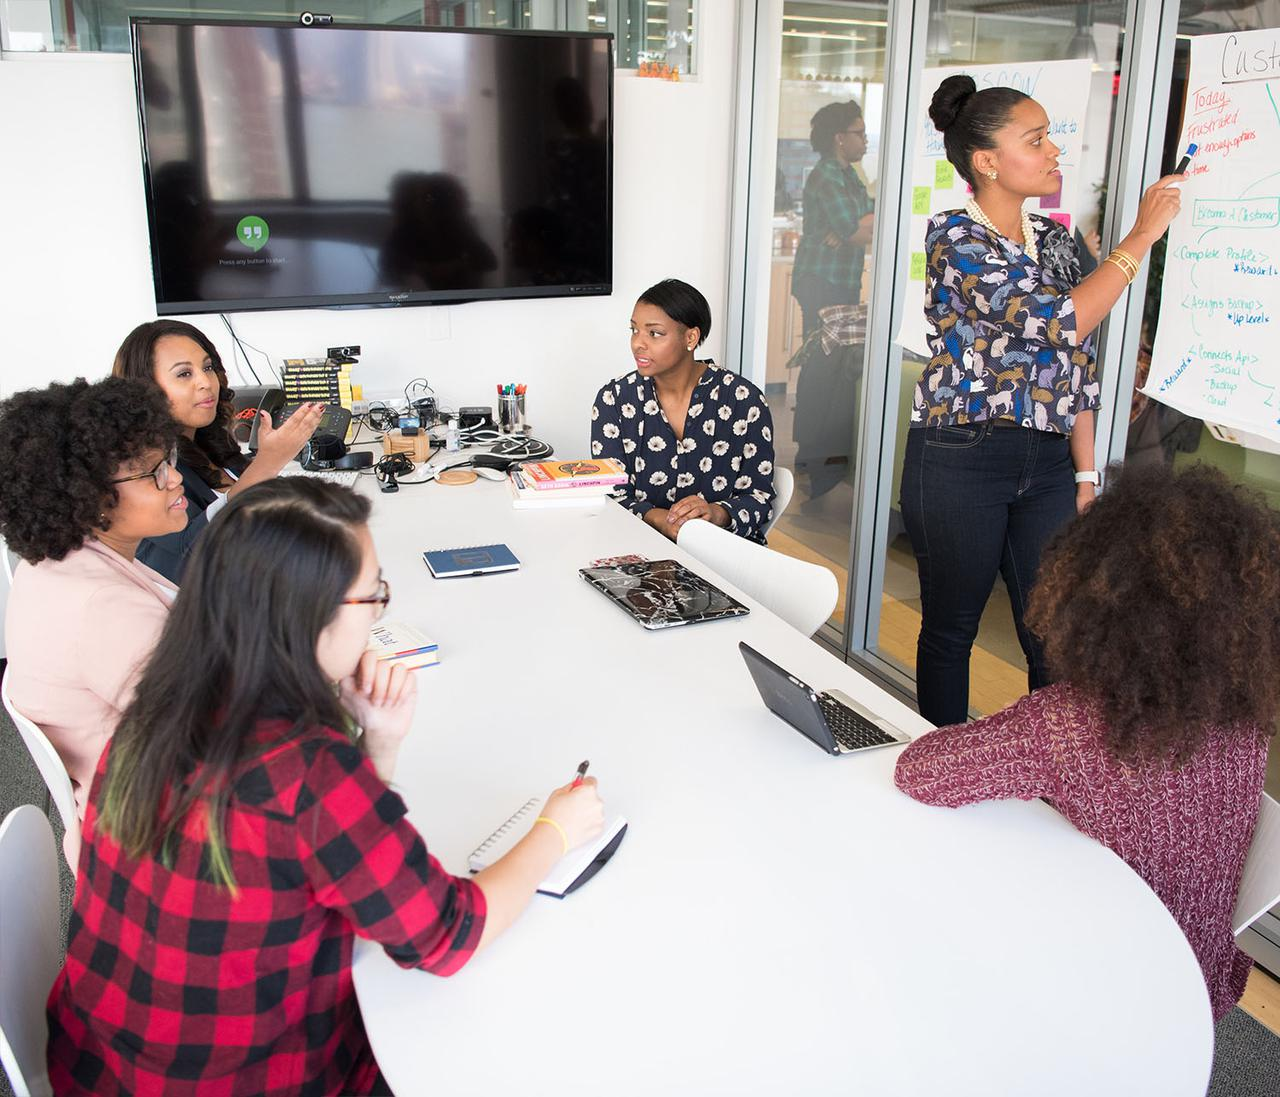 Our 5-step process has been proven to effectively help black women launch their careers to new heights.